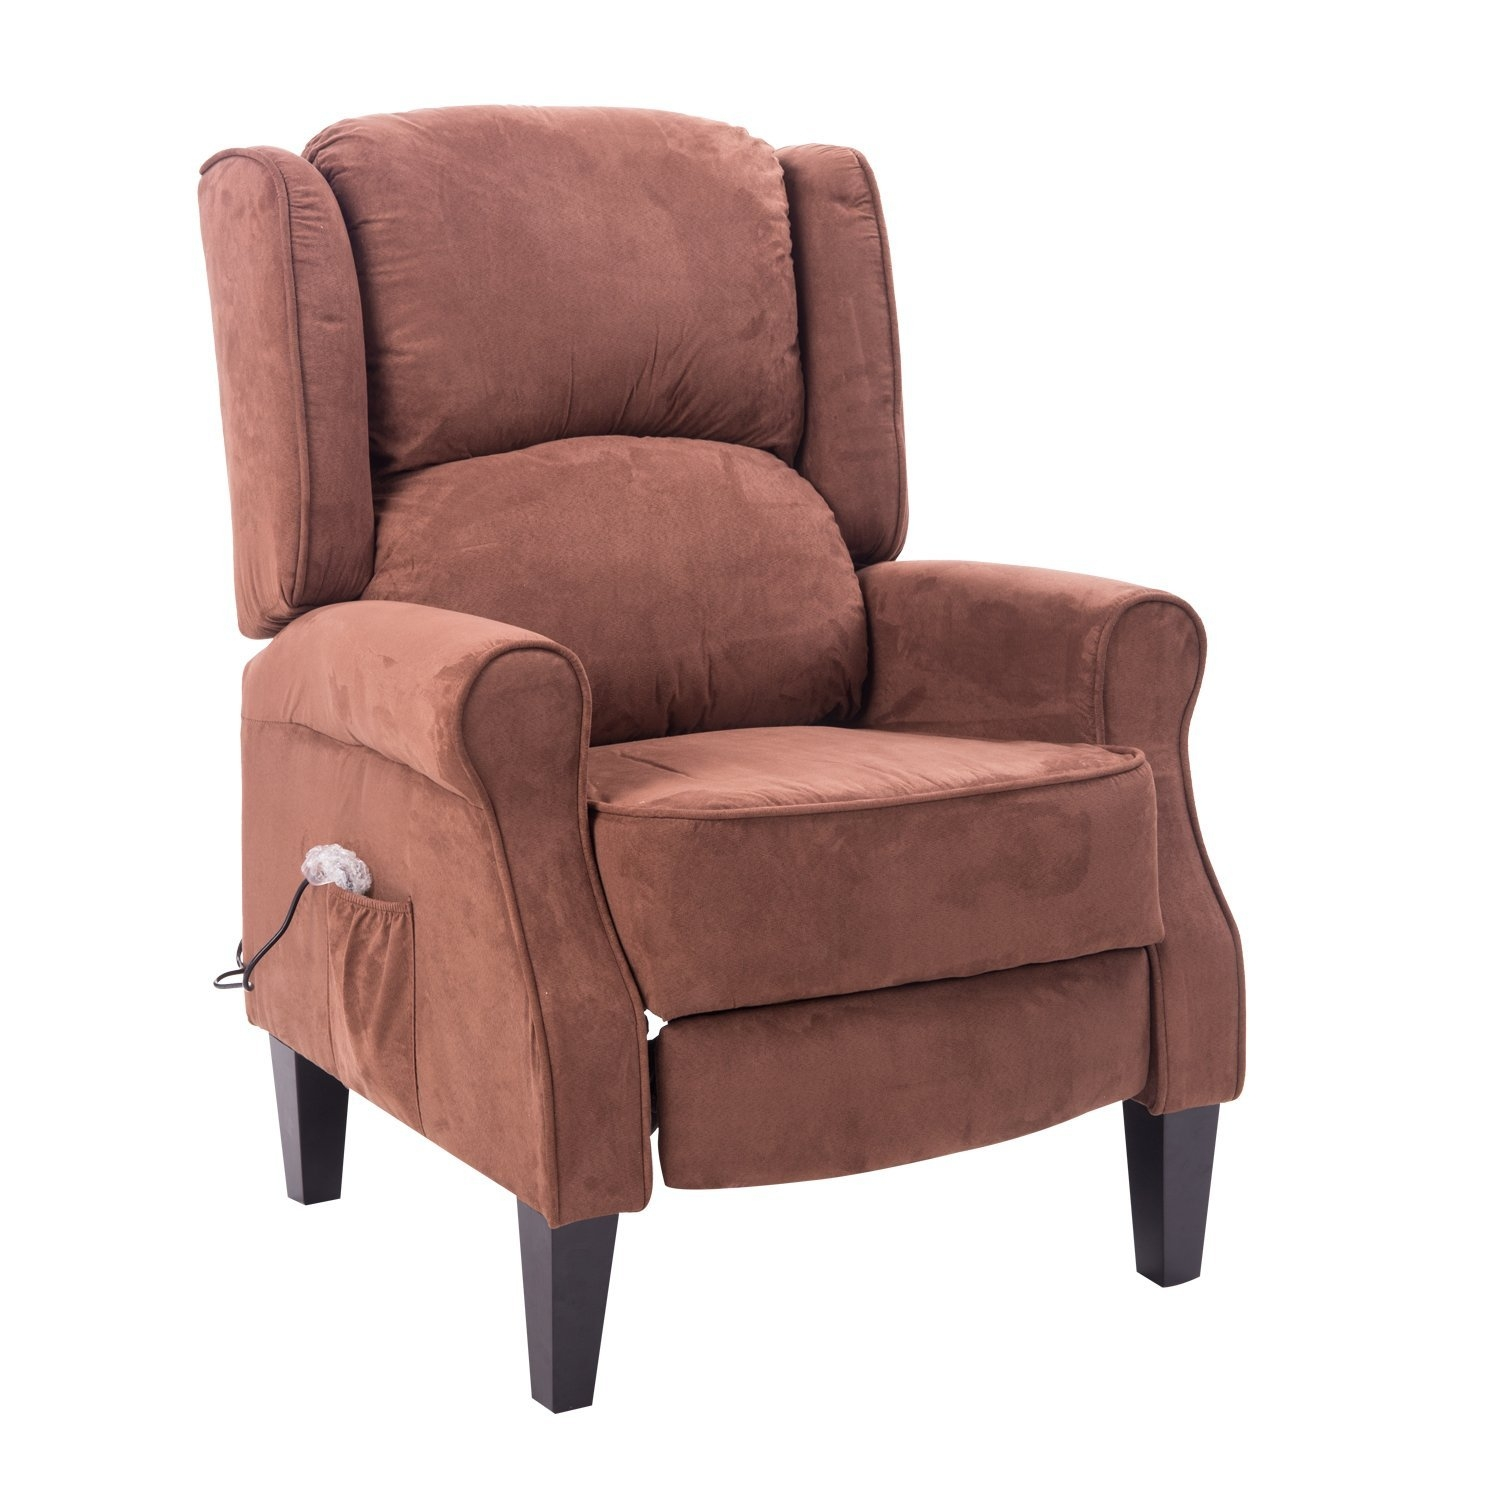 HomCom Heated Vibrating Suede Massage Recliner Chair